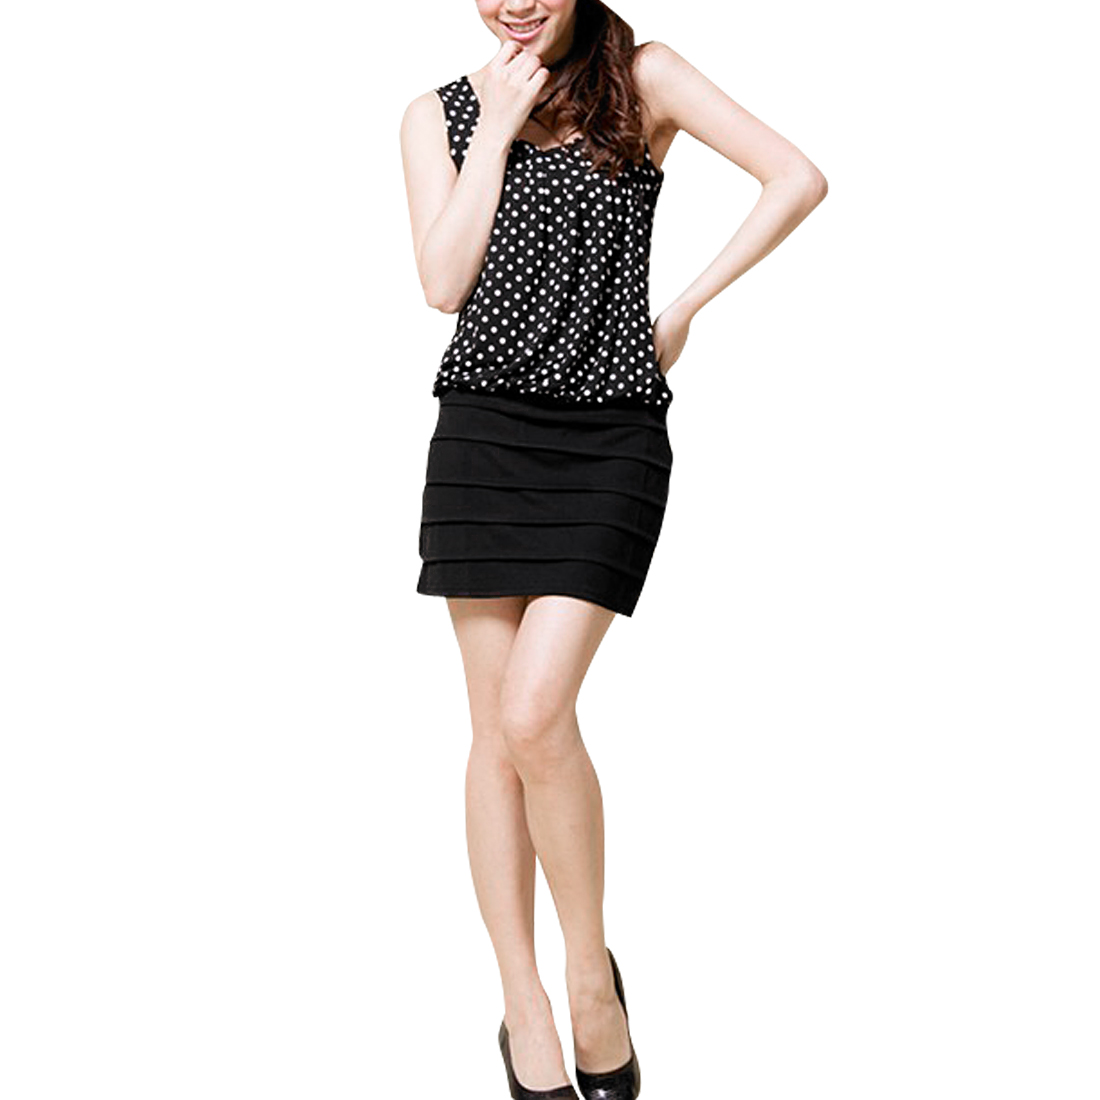 Lady U Neck Dots Prints Slim Fit Shutter Pleat Black Dress XS